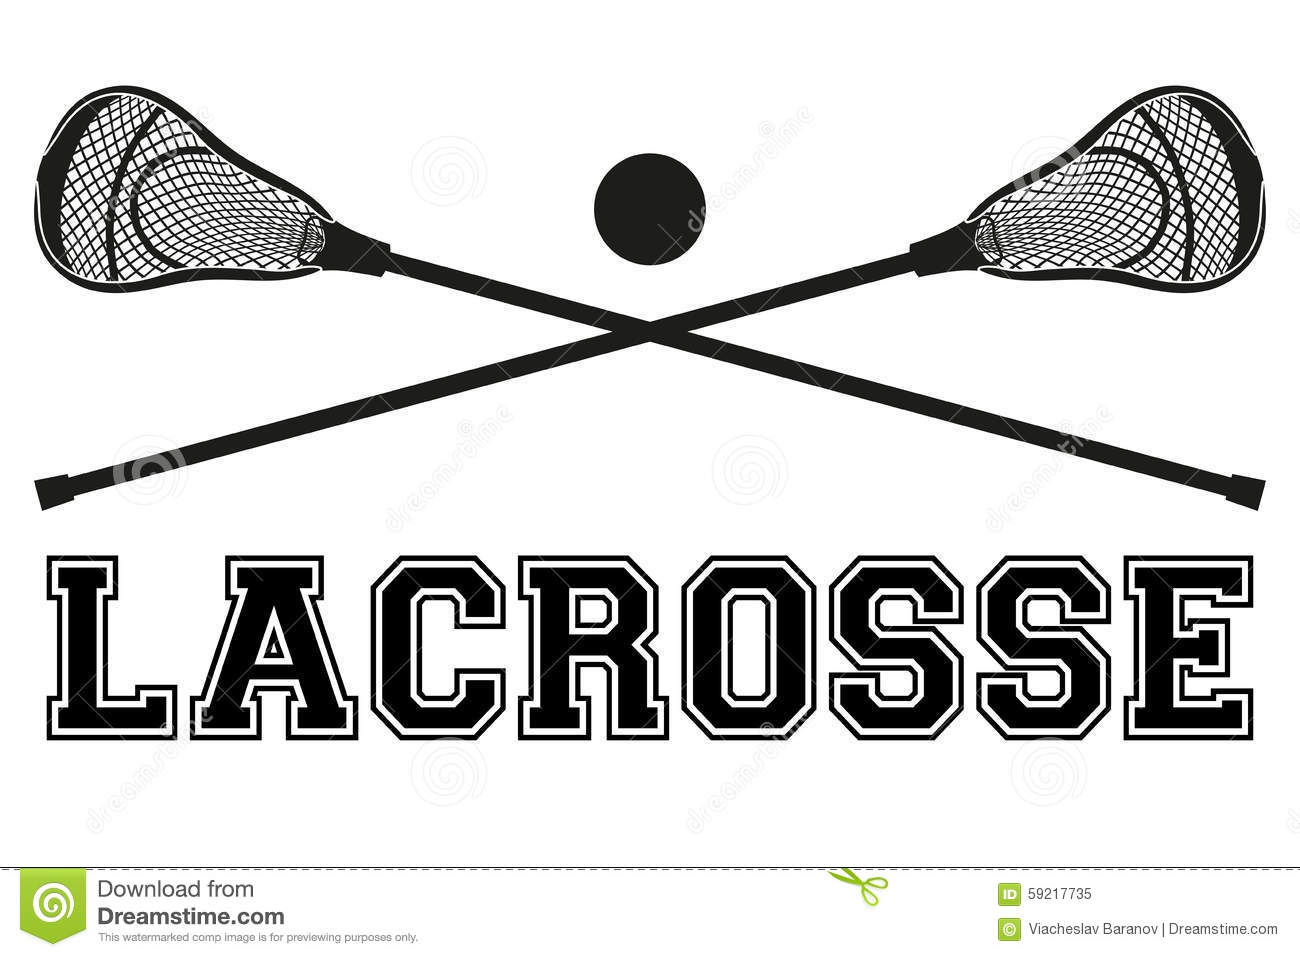 1013 Lacrosse free clipart.